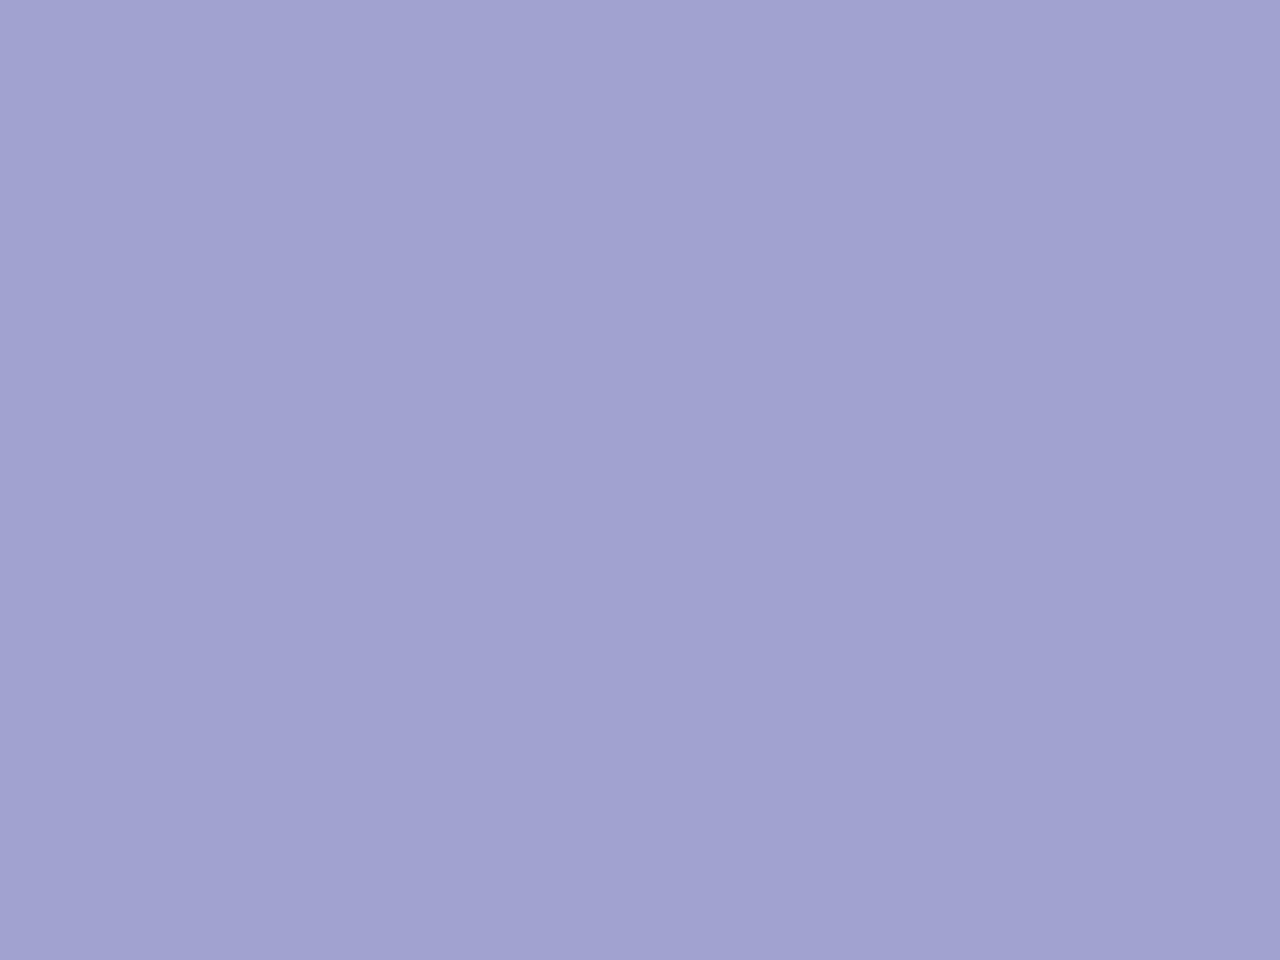 1280x960 Blue Bell Solid Color Background